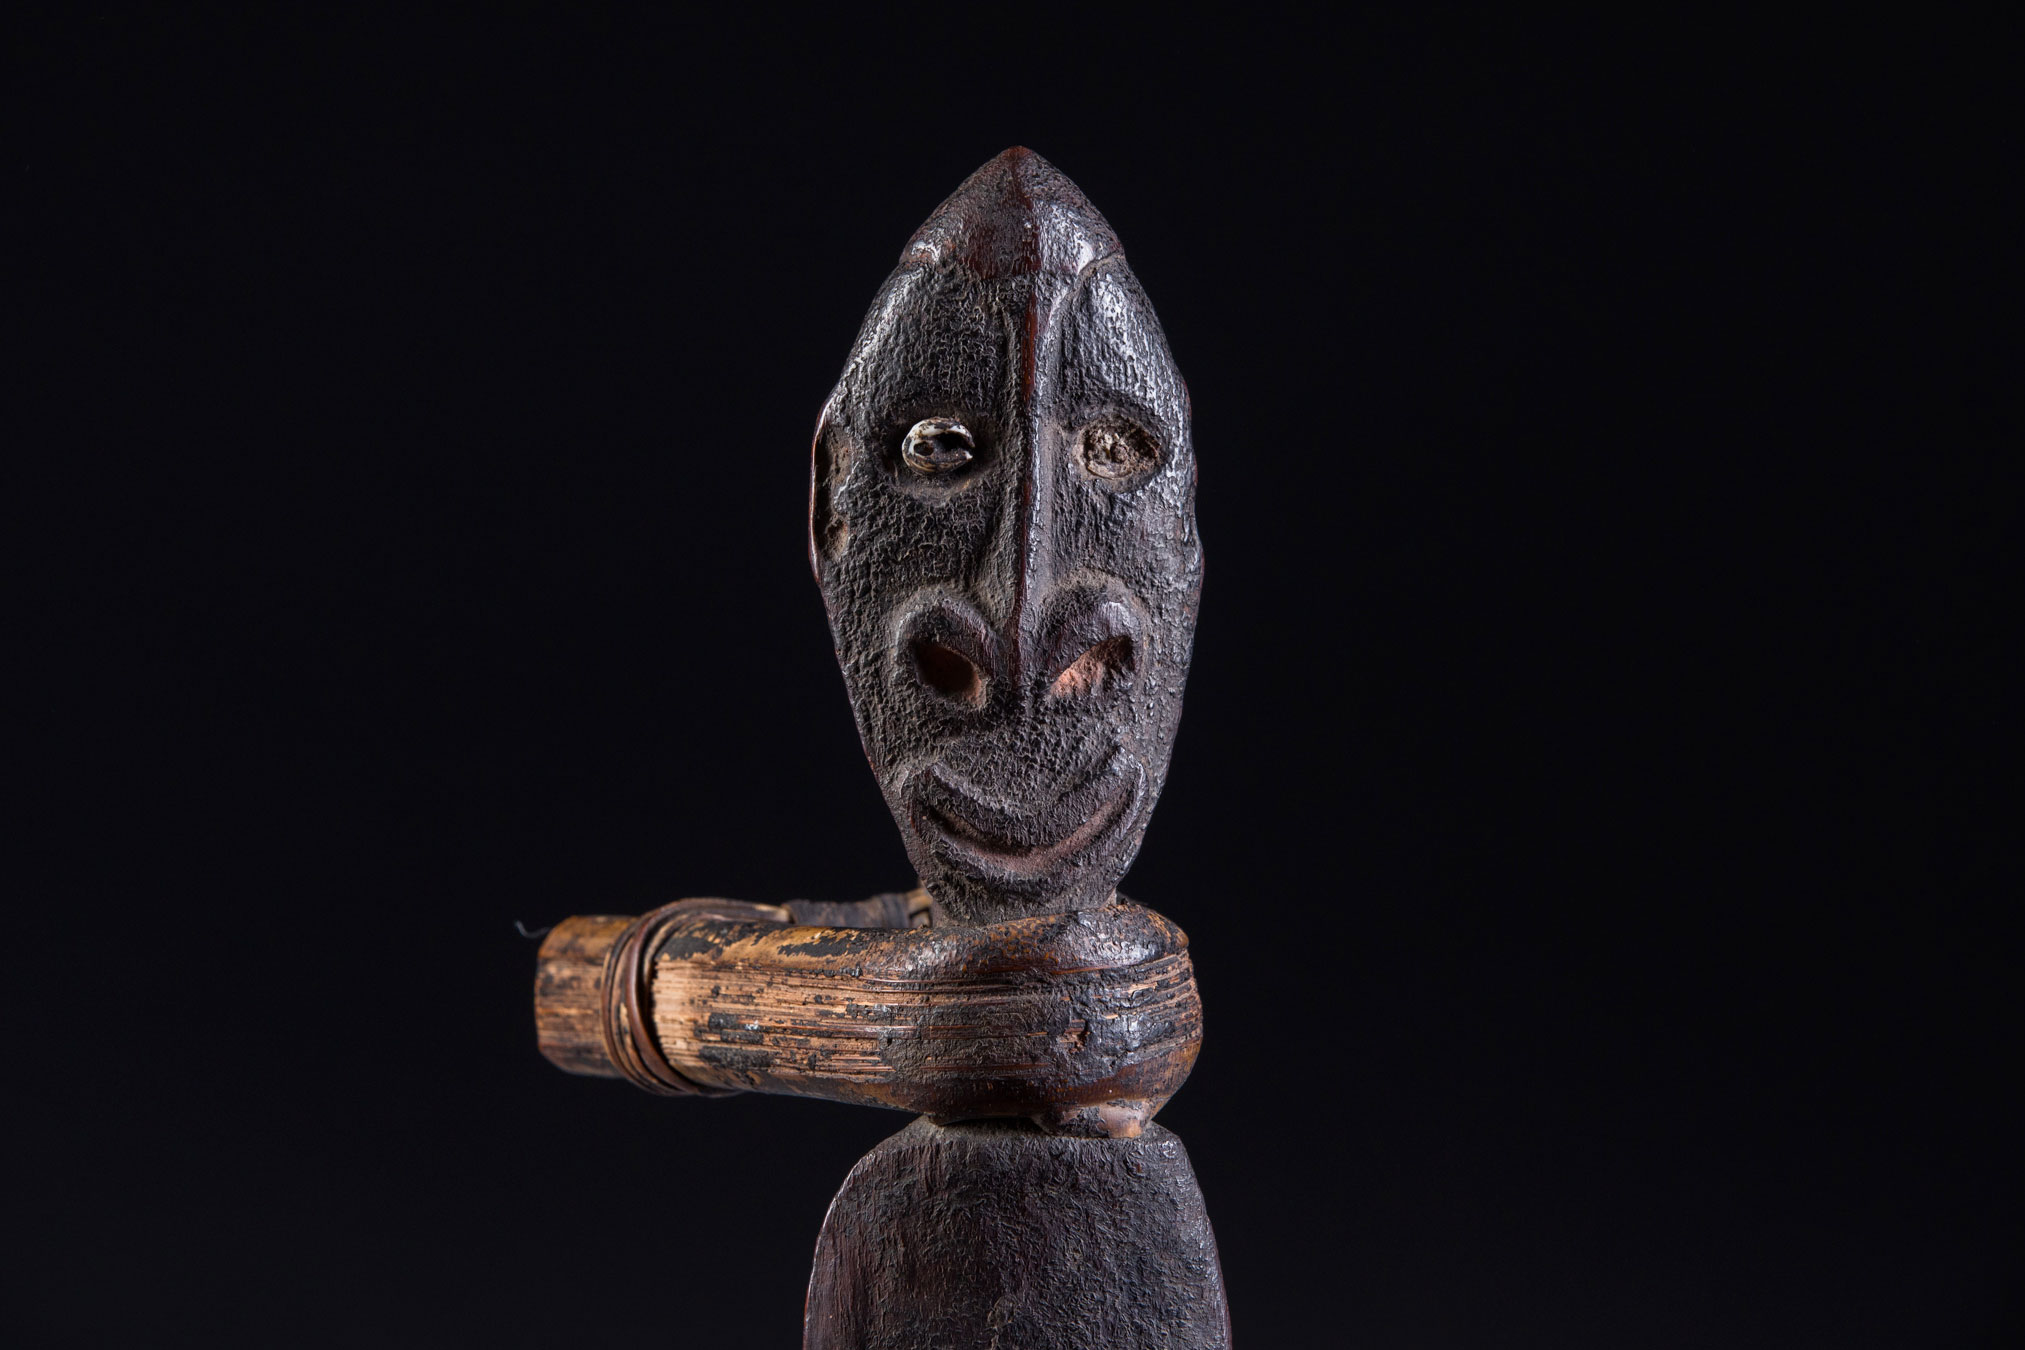 Papua New Guinea art objects and artifacts | Middle Sepik River neckrest